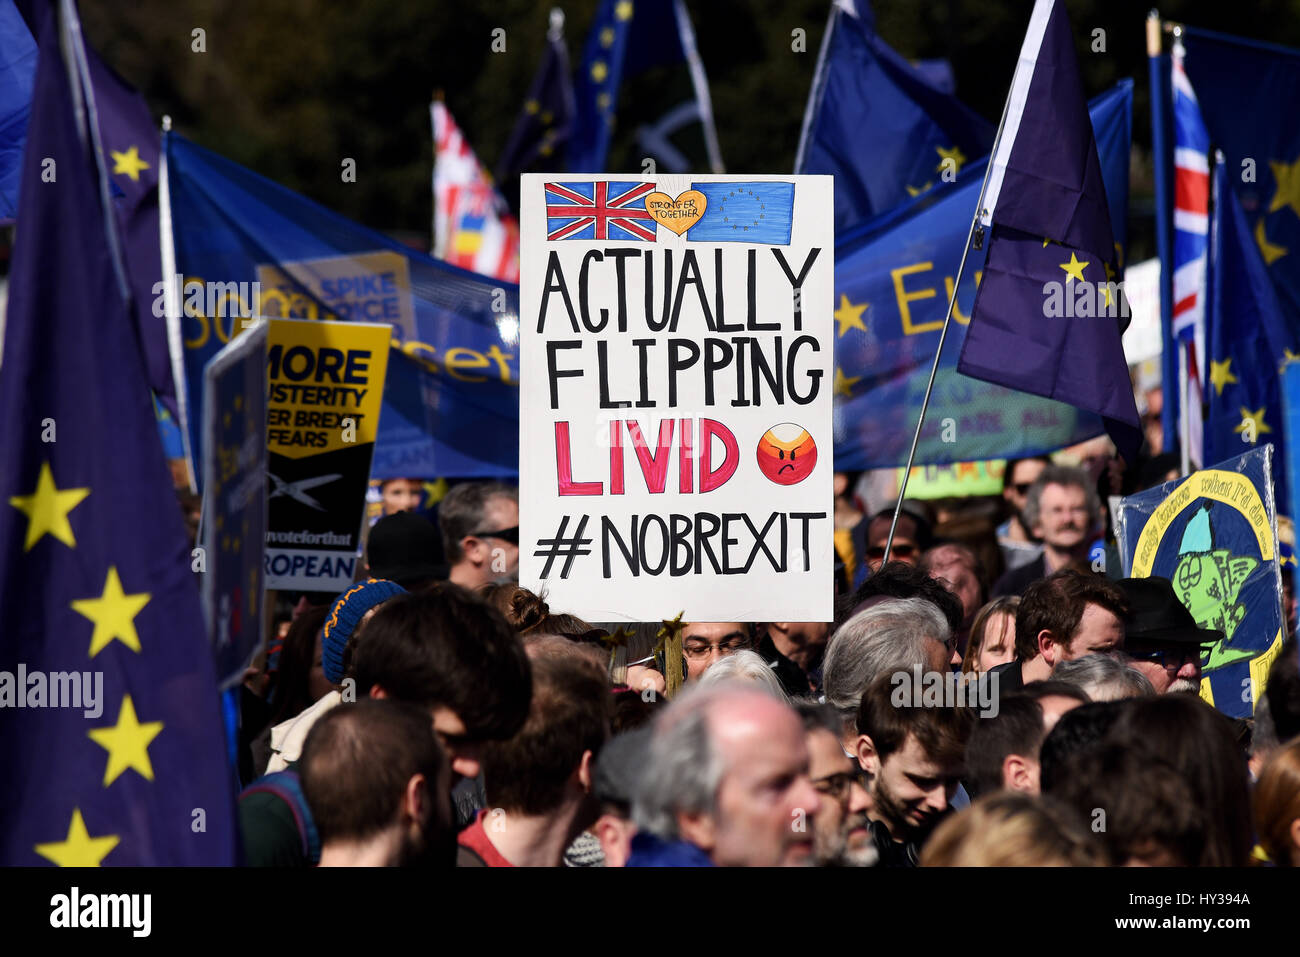 unite-for-europe-was-a-protest-march-against-the-signing-of-article-HY394A.jpg